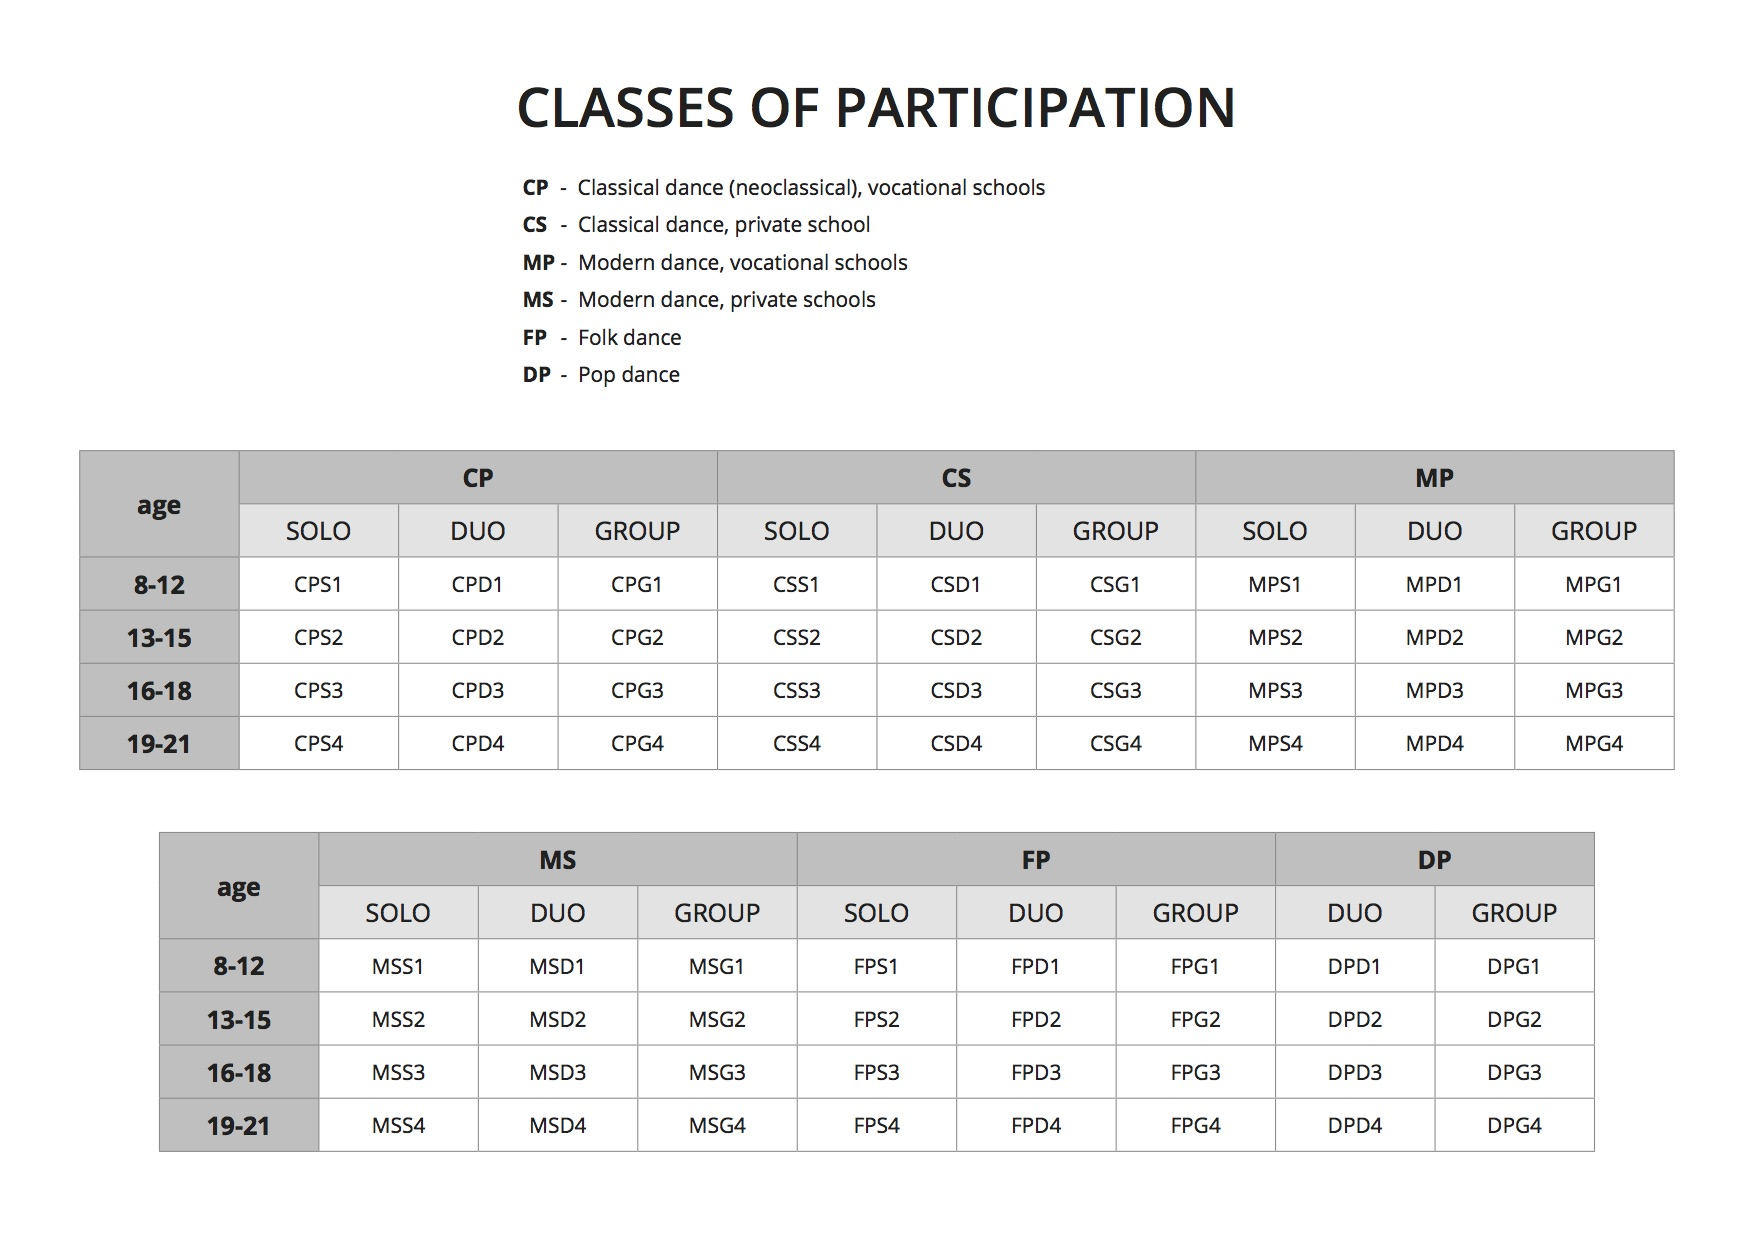 Classes of participation